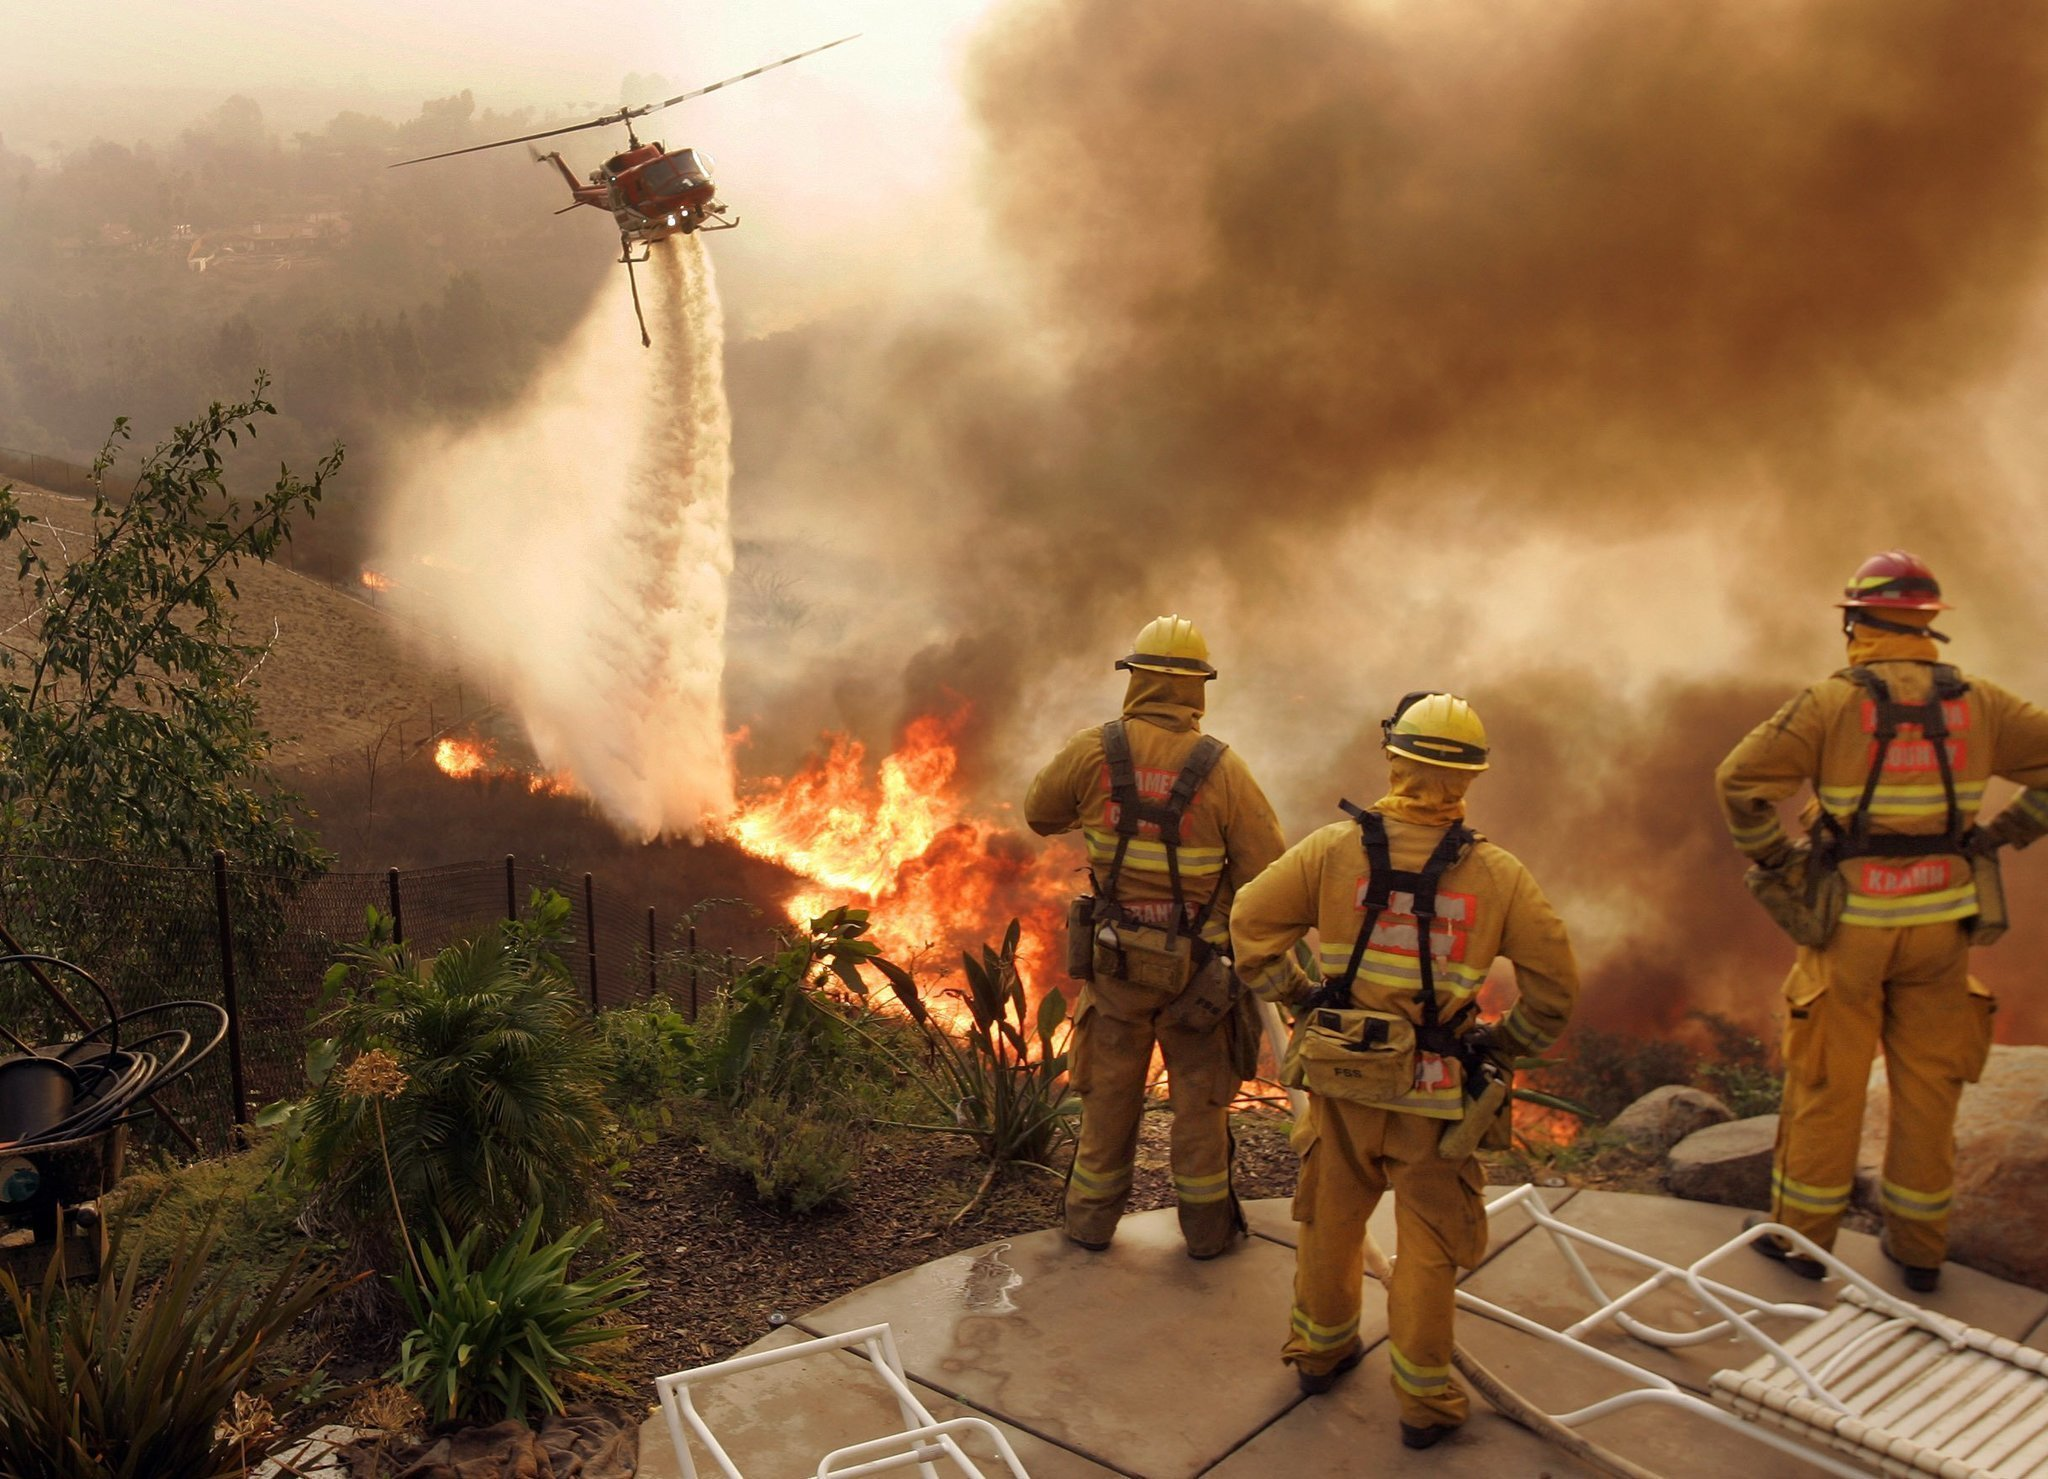 SDG&E wildfire response debated at CPUC hearing over costs